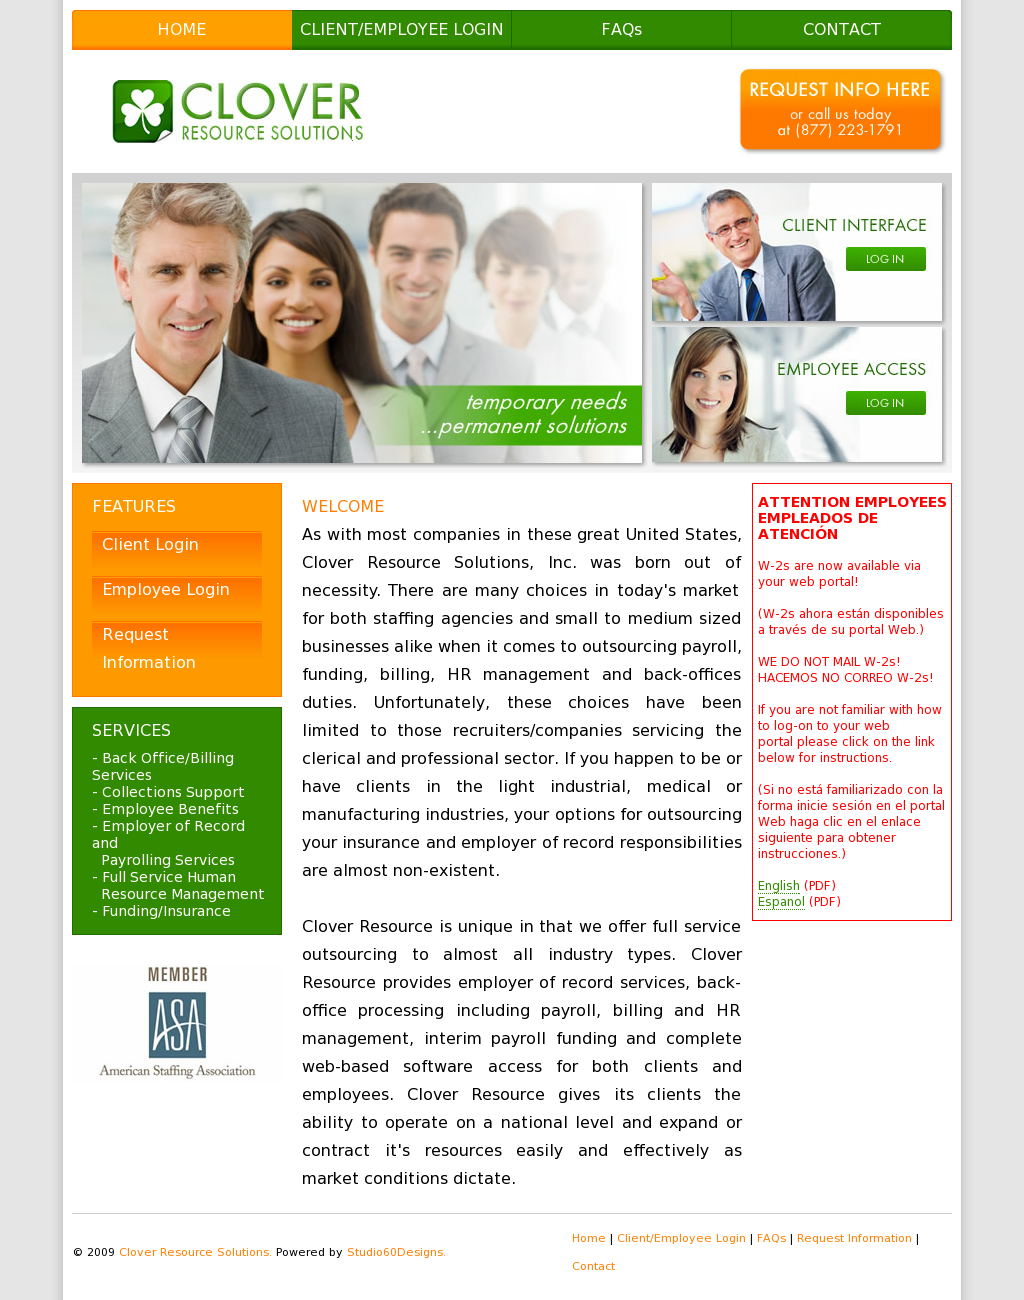 Clover Resource Solutions Competitors, Revenue and Employees - Owler